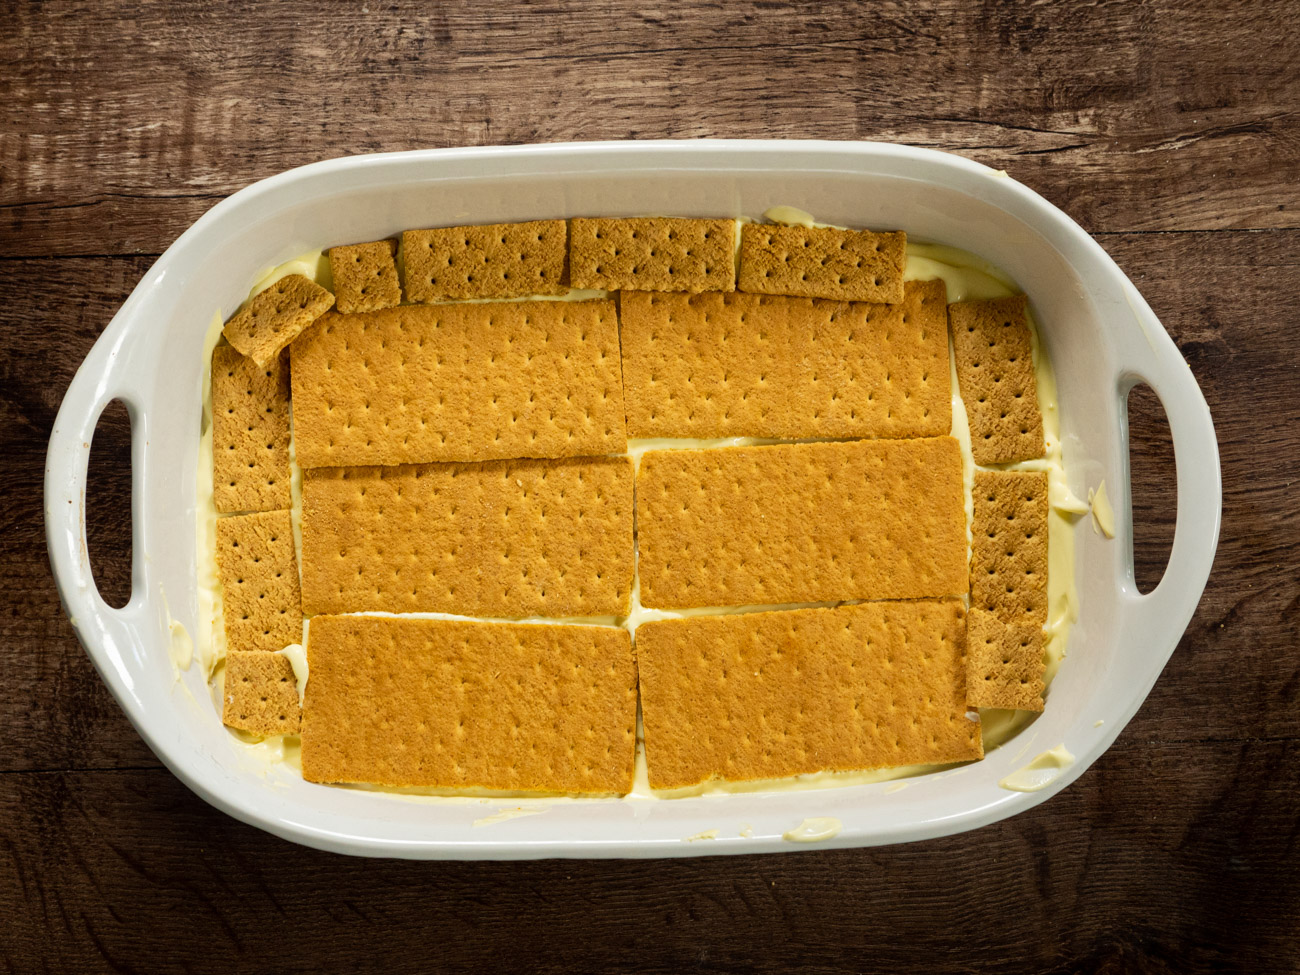 Top with another layer of graham crackers and then pour the rest of the pudding on top of that. Use a knife, rubber spatula, or offset spatula to smooth top pudding layer.